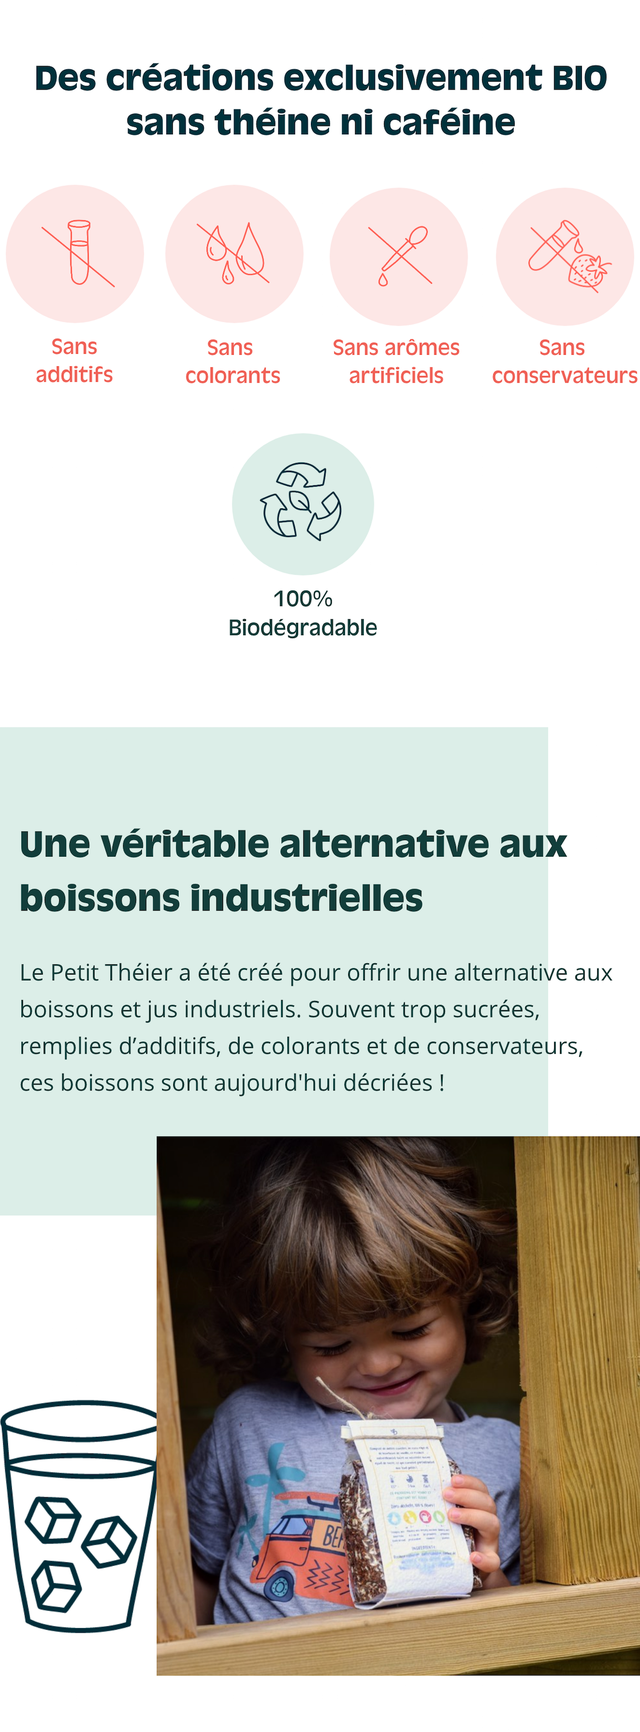 Des creations exclusivement BIO sans theine ni cafeine Sans Sans Sans aromes Sans additifs colorants artificiels conservateurs 1 100% Biodegradable Une veritable alternative aux boissons industrielles Le Petit Theier a ete cree pour offrir une alternative aux boissons et jus industriels. Souvent trop sucrees, remplies d'additifs, de colorants et de conservateurs, ces boissons sont aujourd'hui decriees !